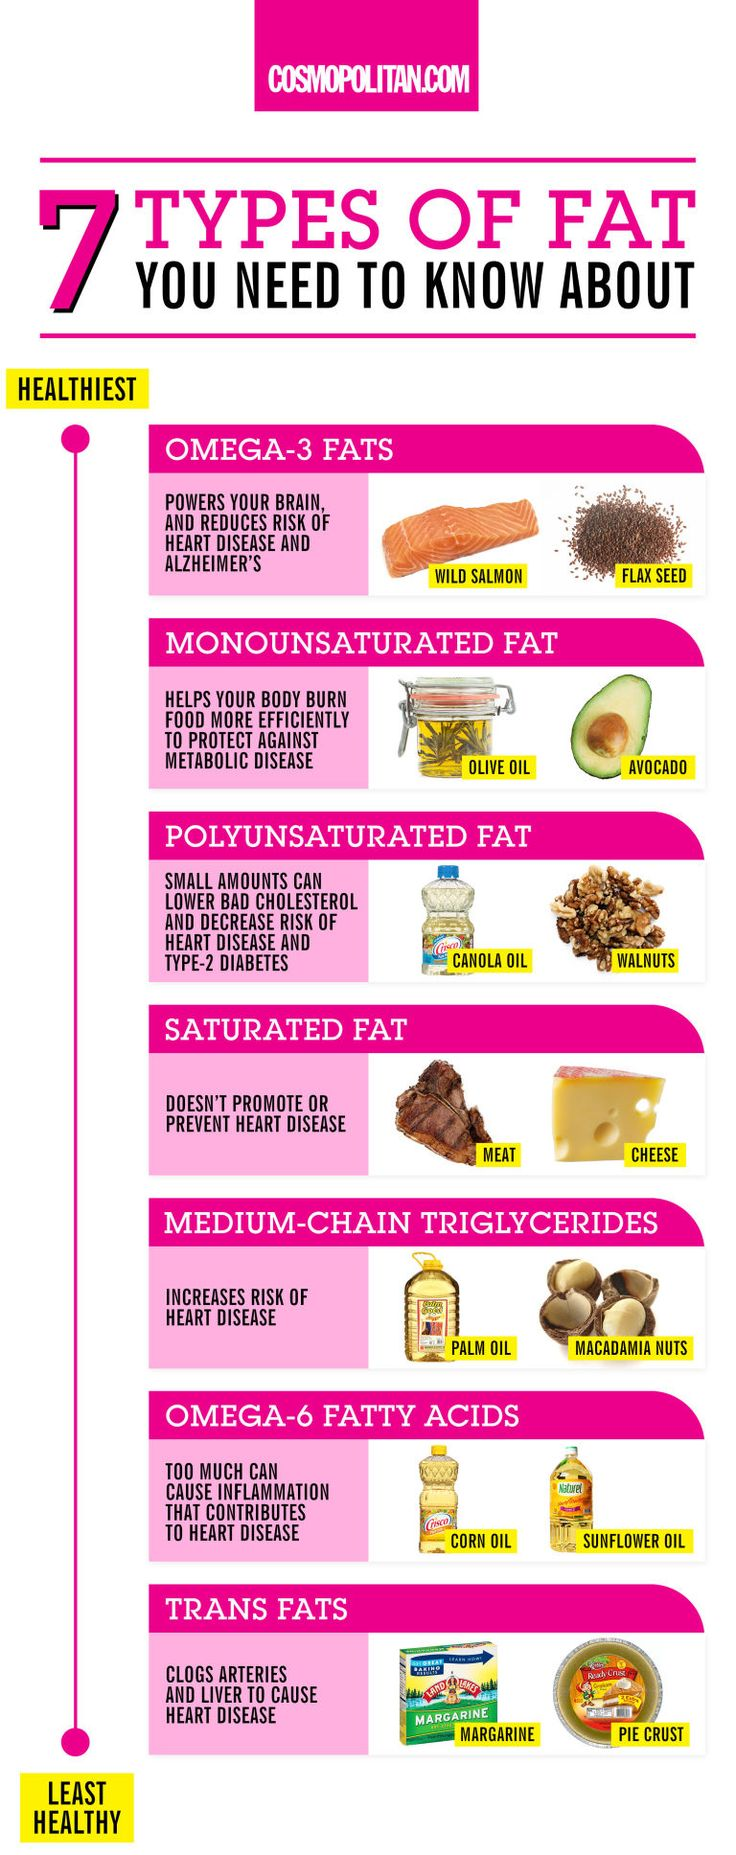 EVERYTHING YOU NEED TO KNOW ABOUT HEALTHY AND UNHEALTHY FATS: Boost your brain power & make your skin and hair gleam with this list of healthy fats! You'll also find out what fats you should ditch. Click through healthy eating tips, nutrition advice, and more healthy ideas.